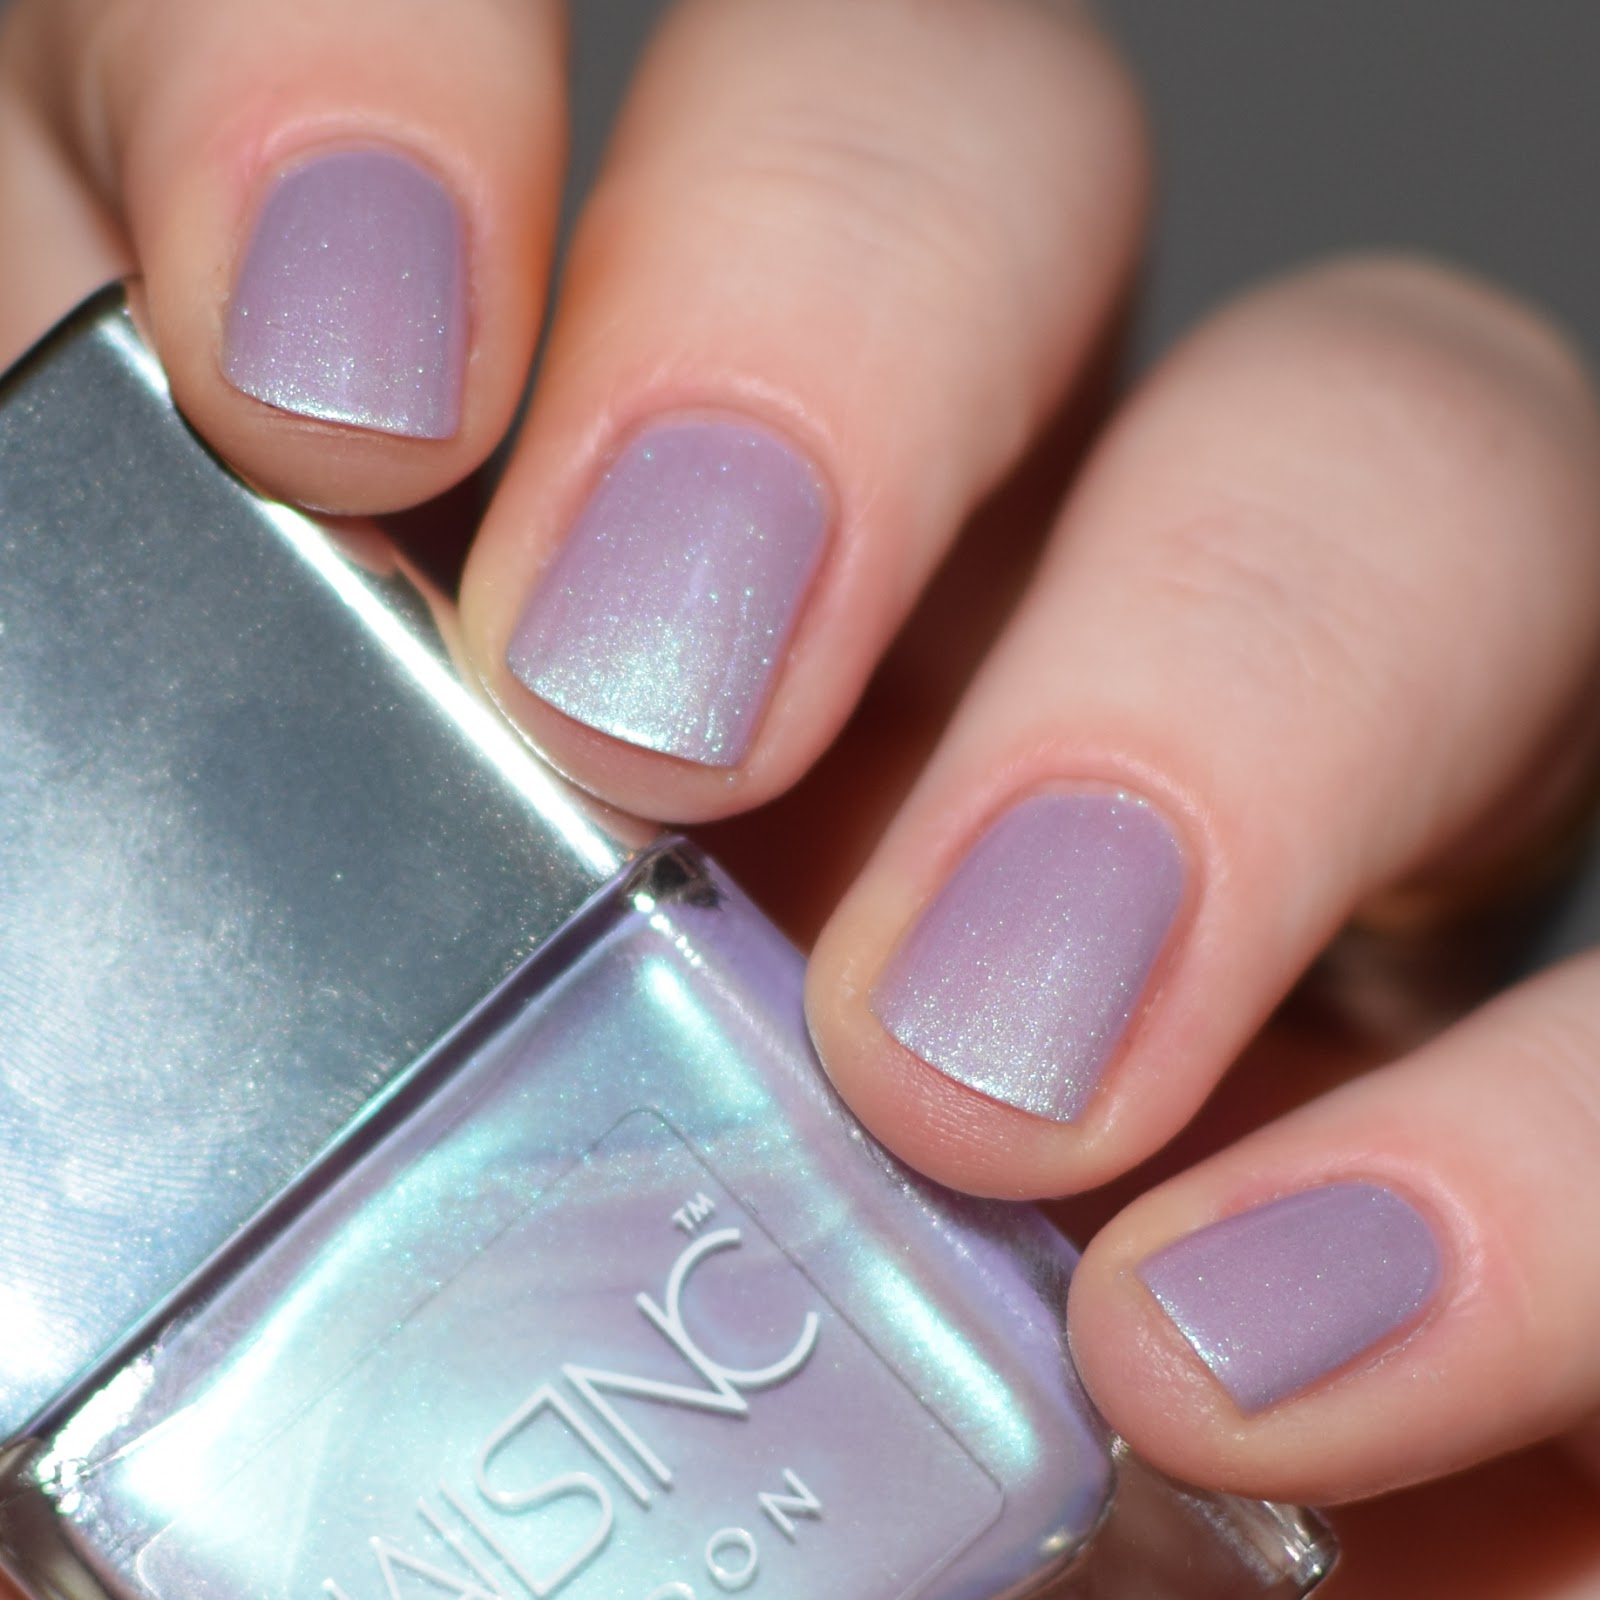 Nails Inc\'s Sparkle Like A Unicorn Duo // Swatch & Review | Nimy Nails